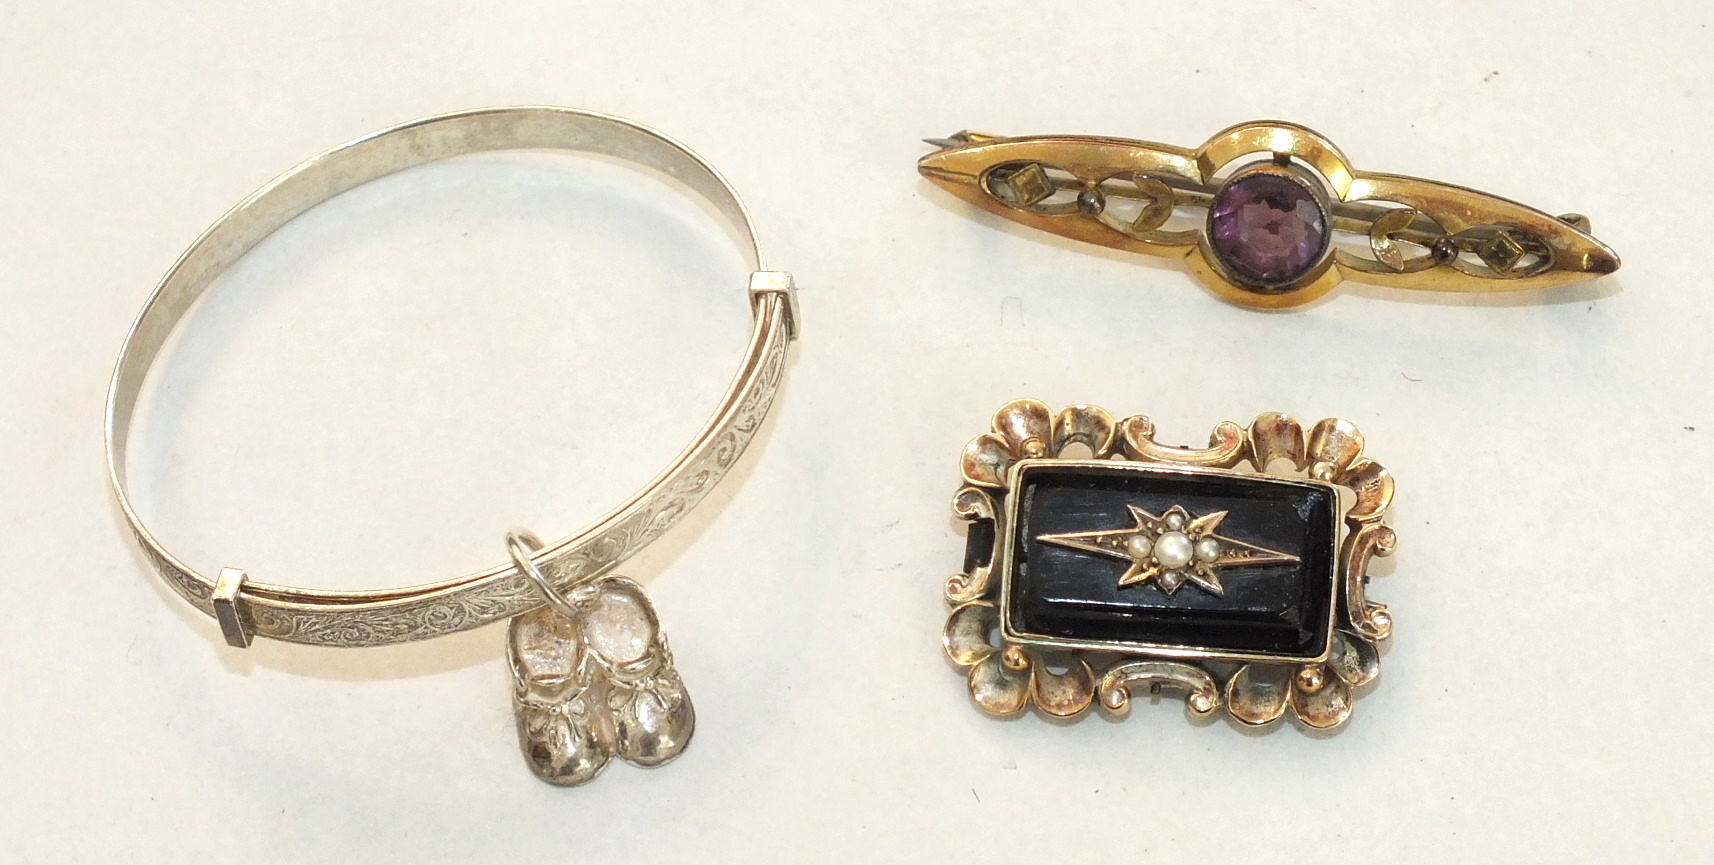 A Victorian mourning brooch with pearl-set onyx plaque within scrolling mount, another brooch and